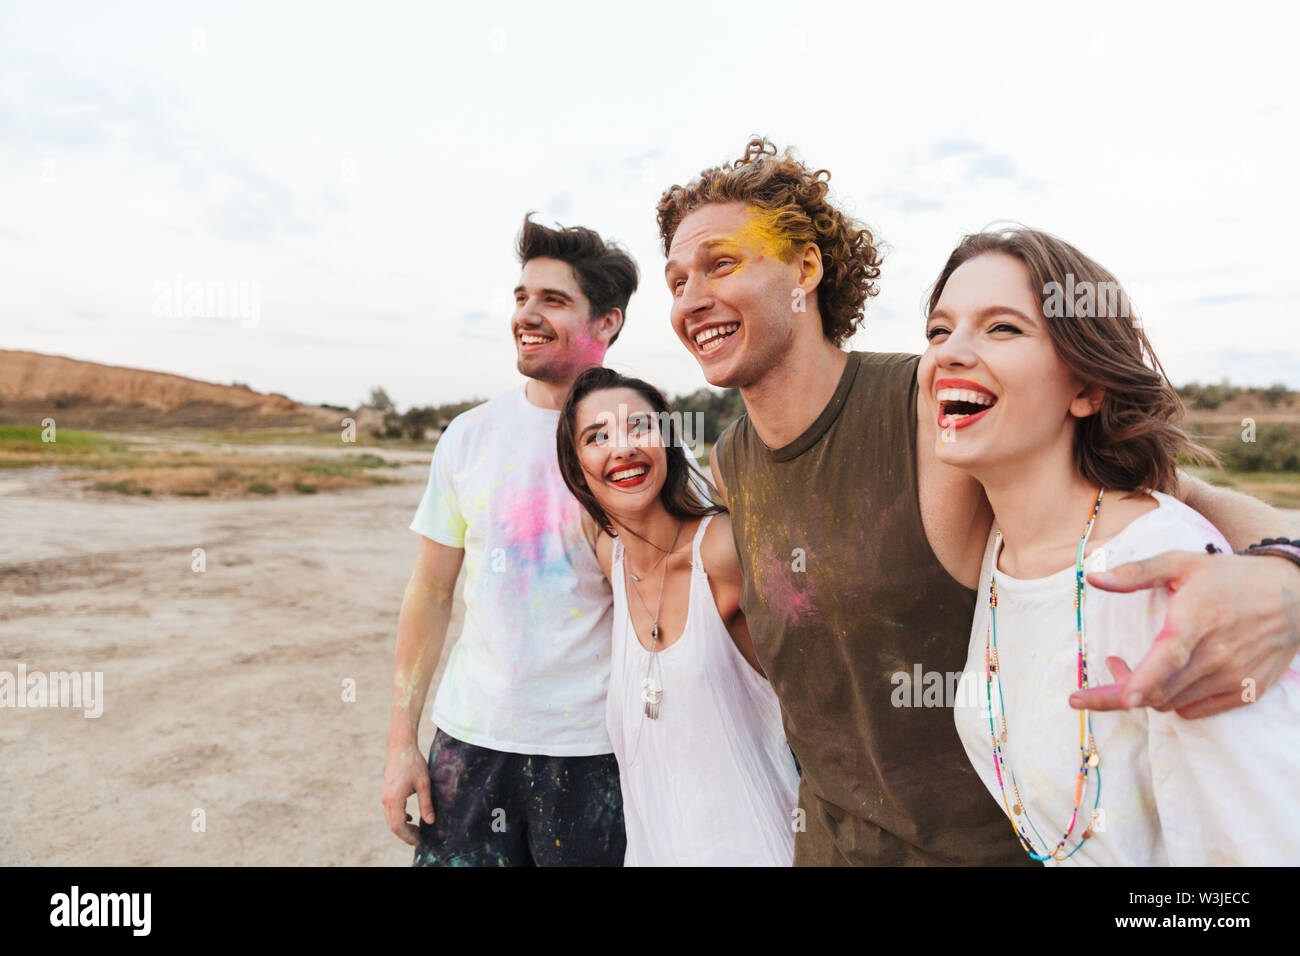 Group of a cheerful young friends having fun at the beach with colorful holi paint Stock Photo